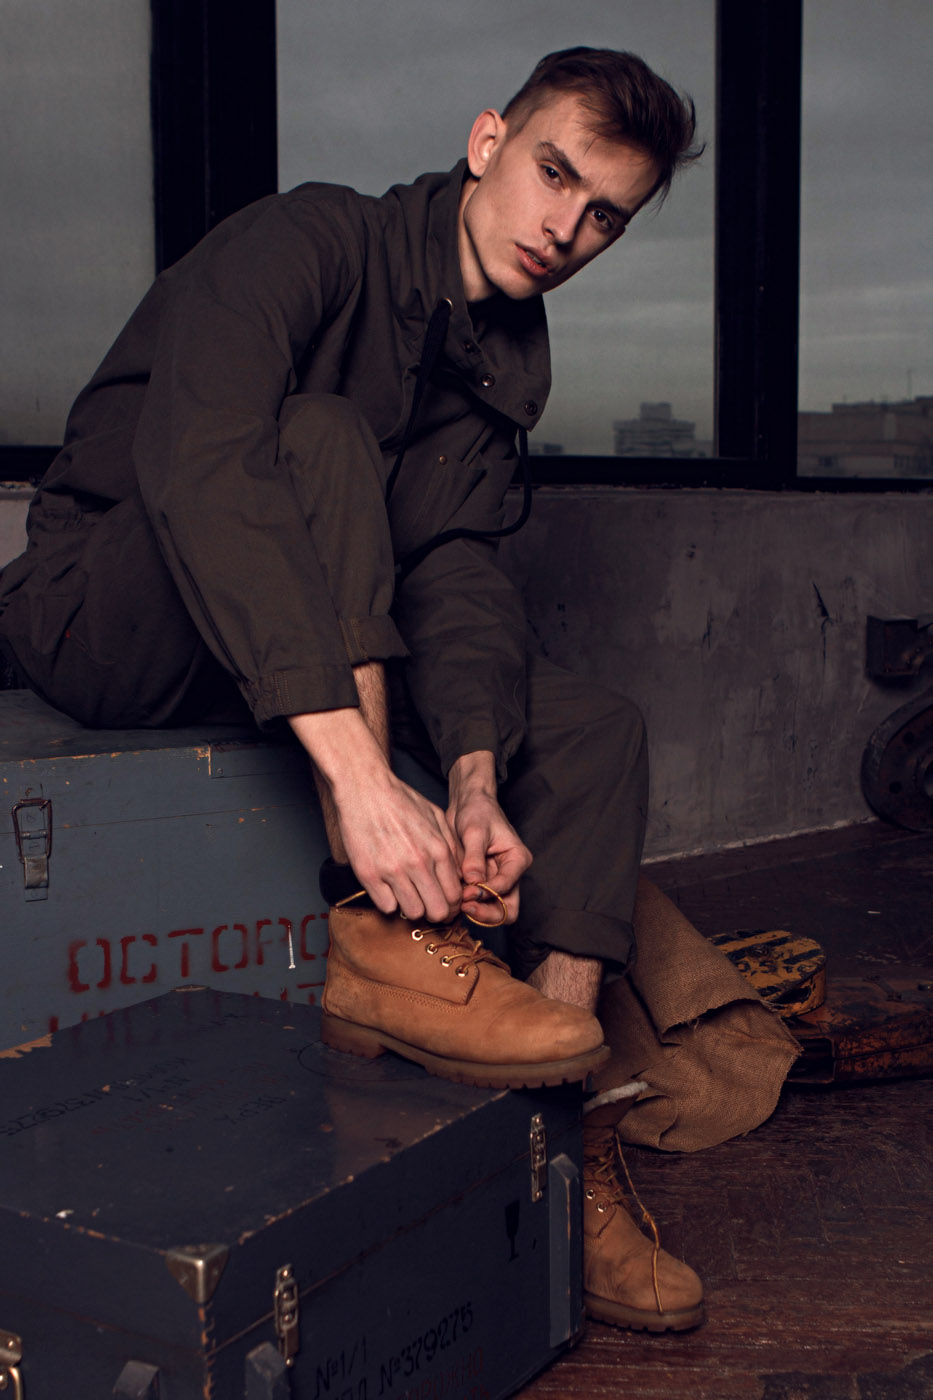 Pavel by Vlada Golubitskaya for CHASSEUR MAGAZINE (11)